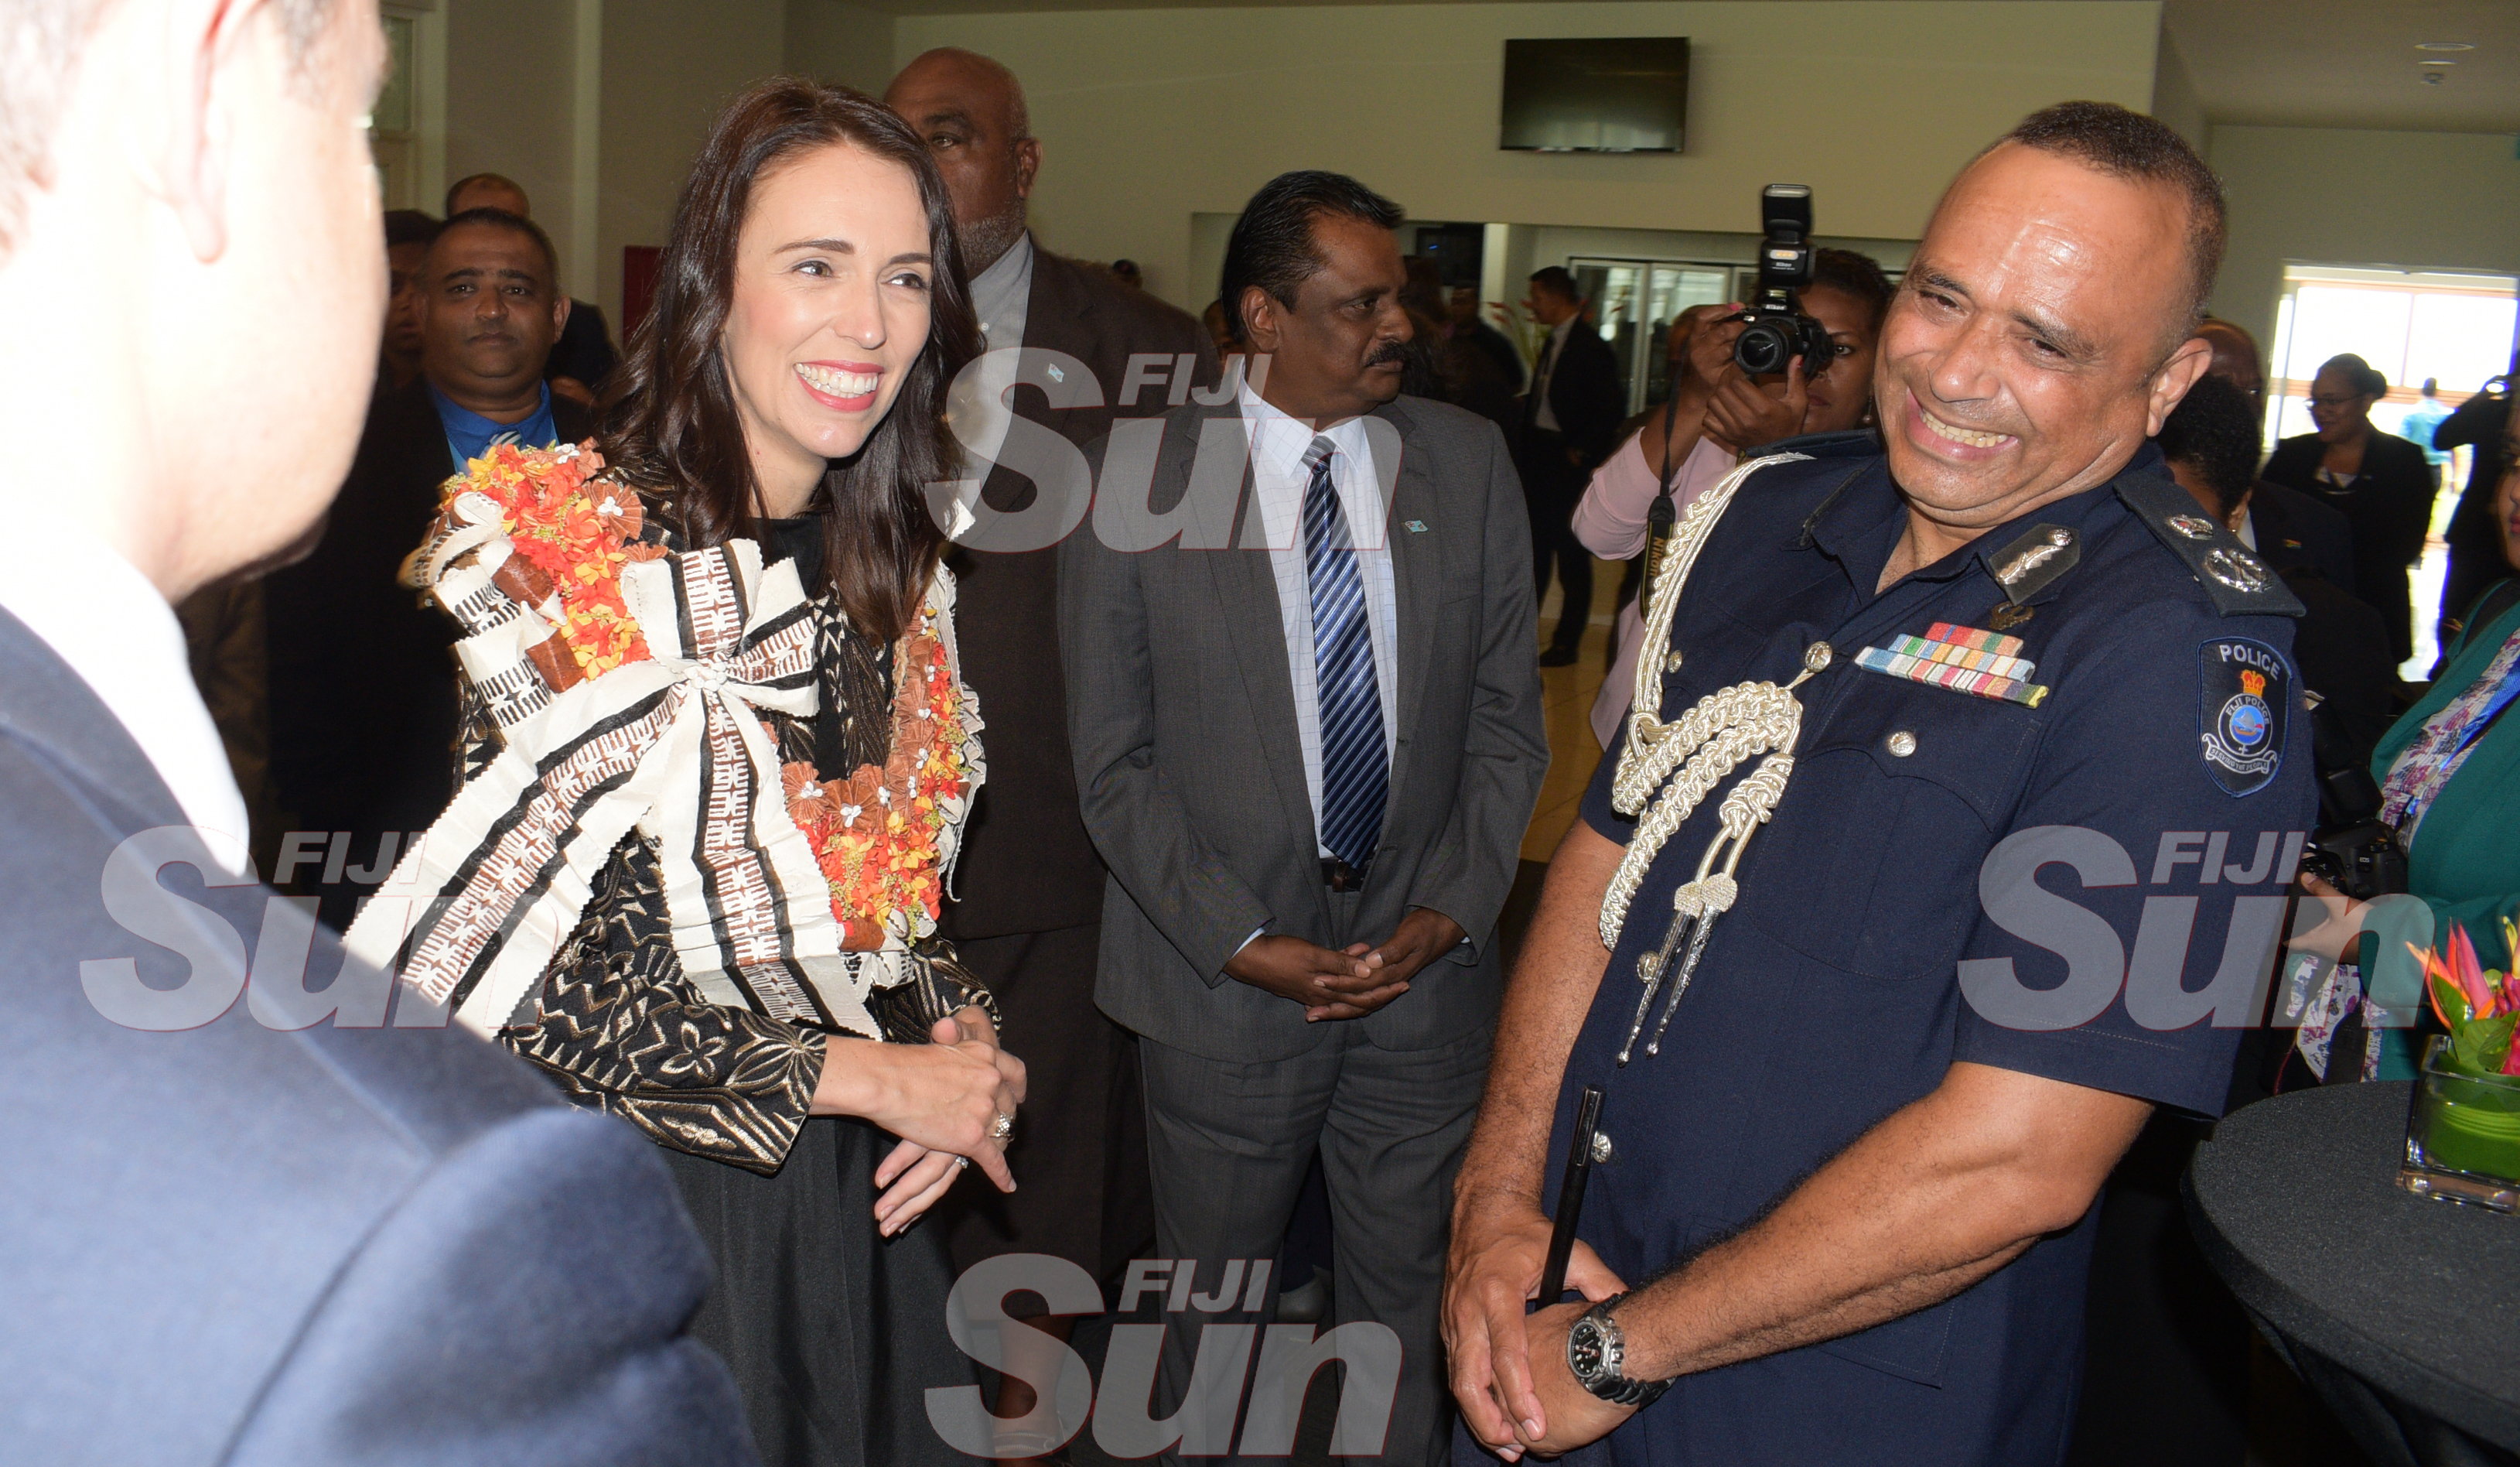 New Zealand Prime Minister Jacinda Ardern with Police Commissioner Sitiveni Qiliho at Grand Pacific Hotel on February 25, 2020. Photo: Ronald Kumar.